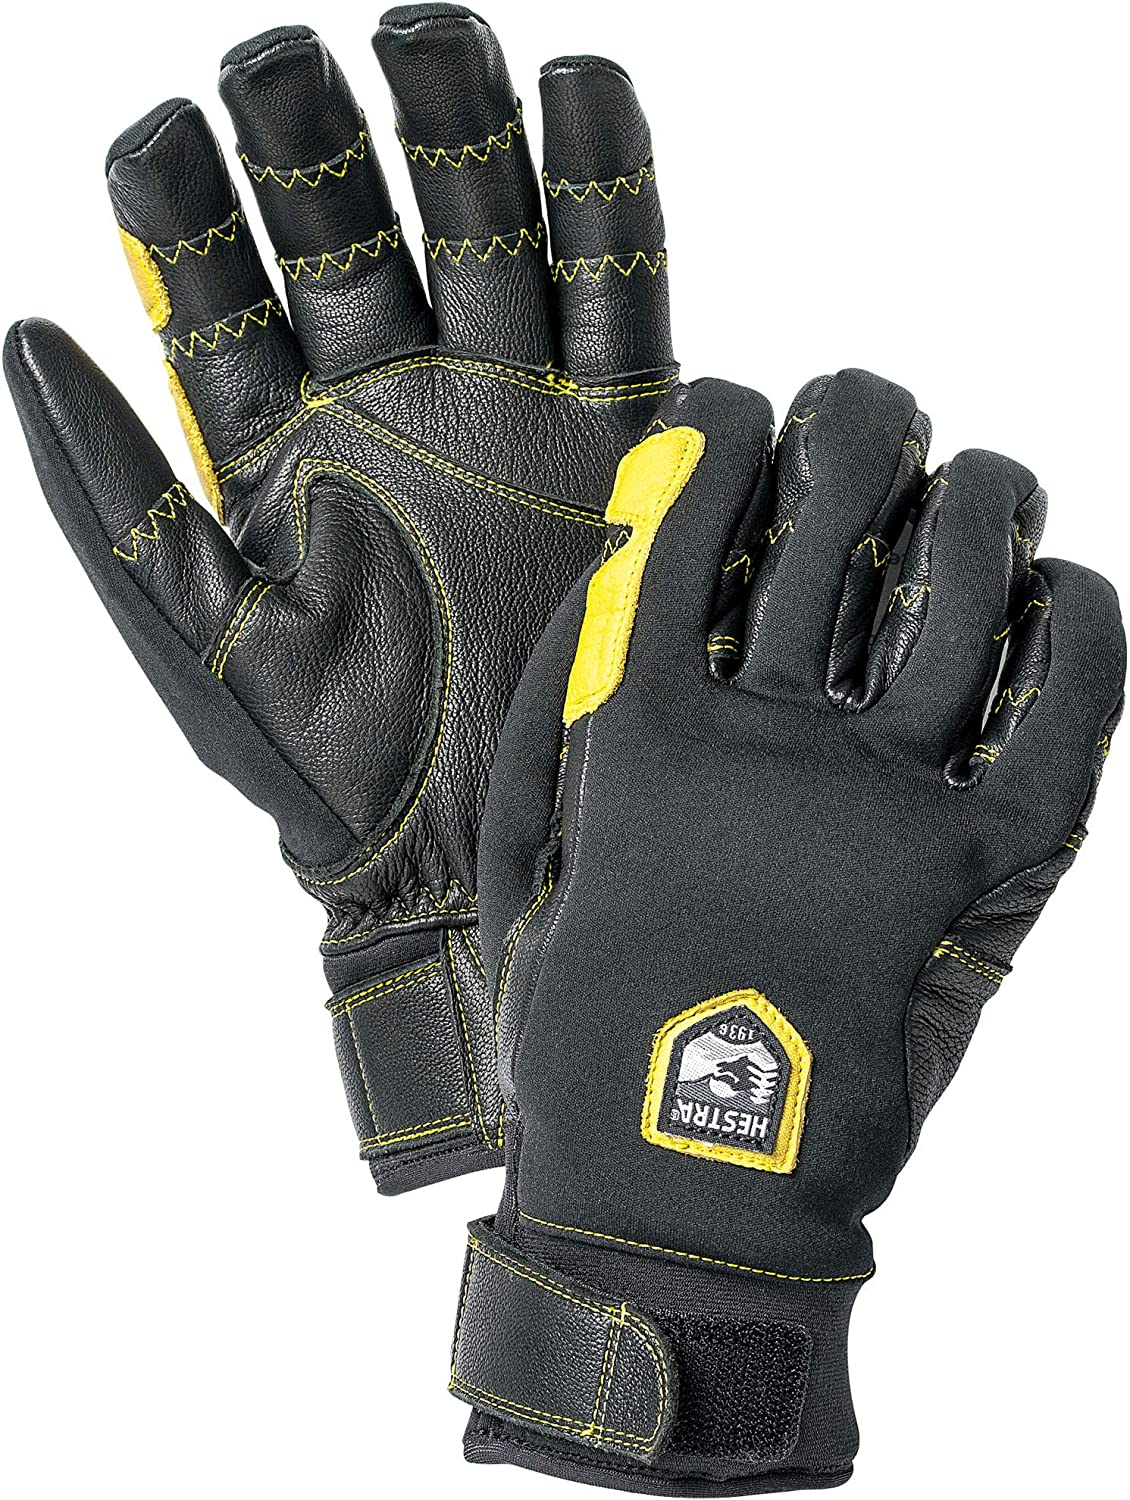 New Shipping Free Hestra Ergo Bombing free shipping Grip Active Glove Durable Outdoors 5-Finger -